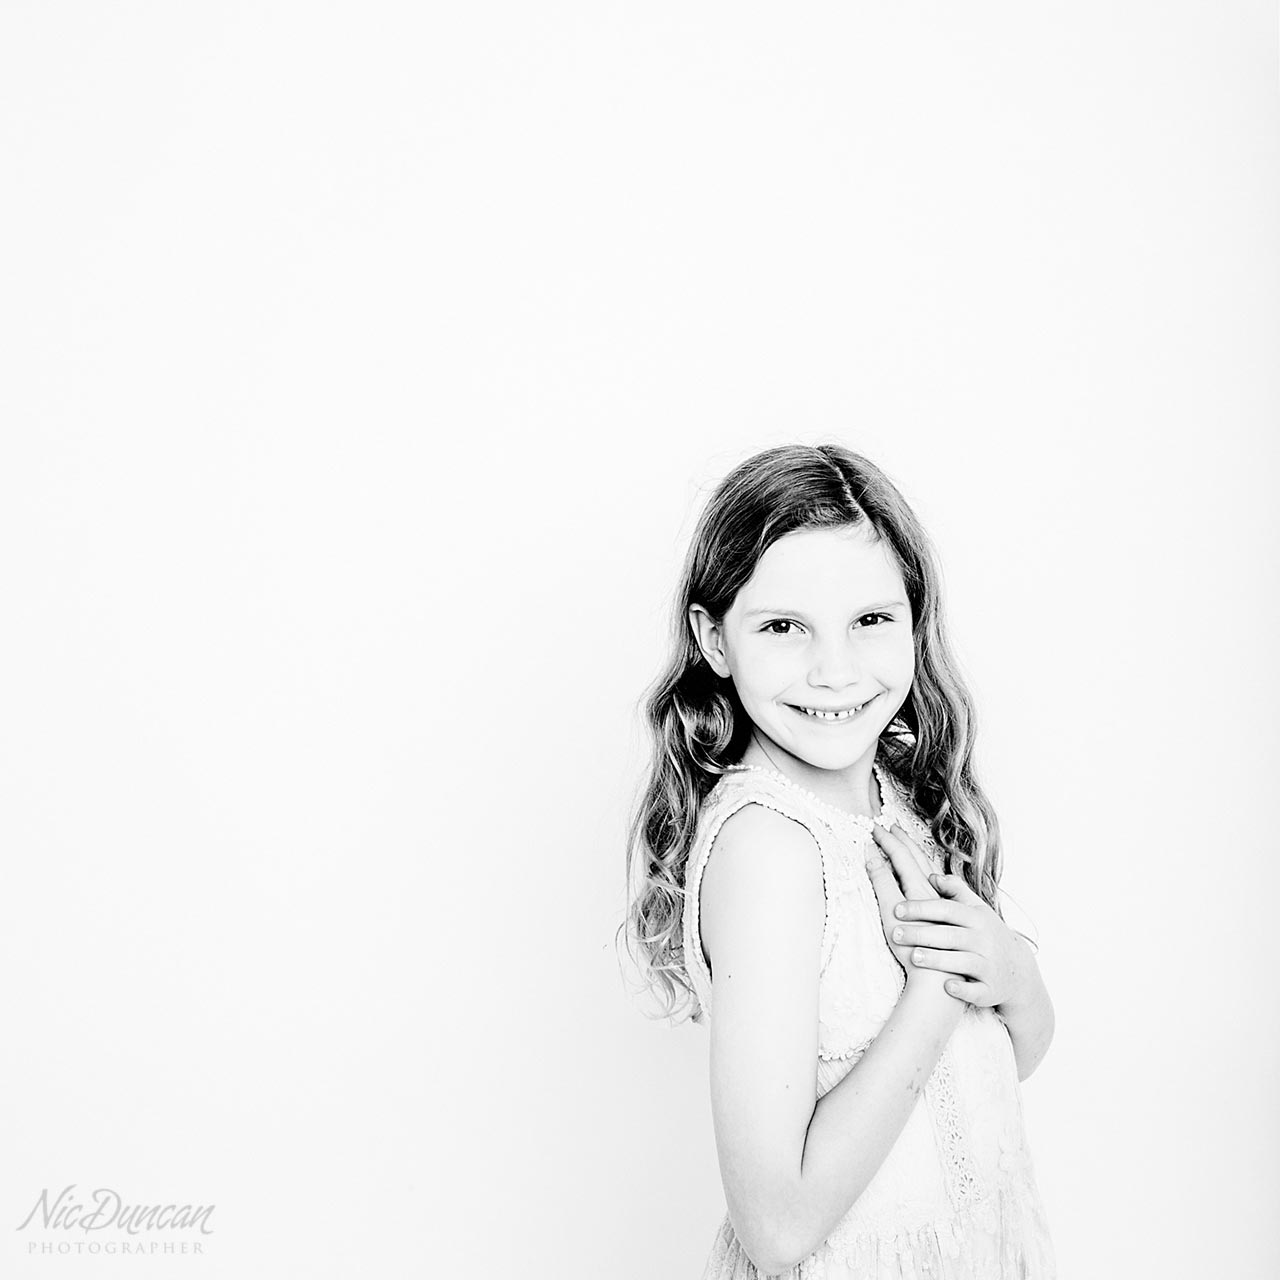 Beautiful children's portraiture